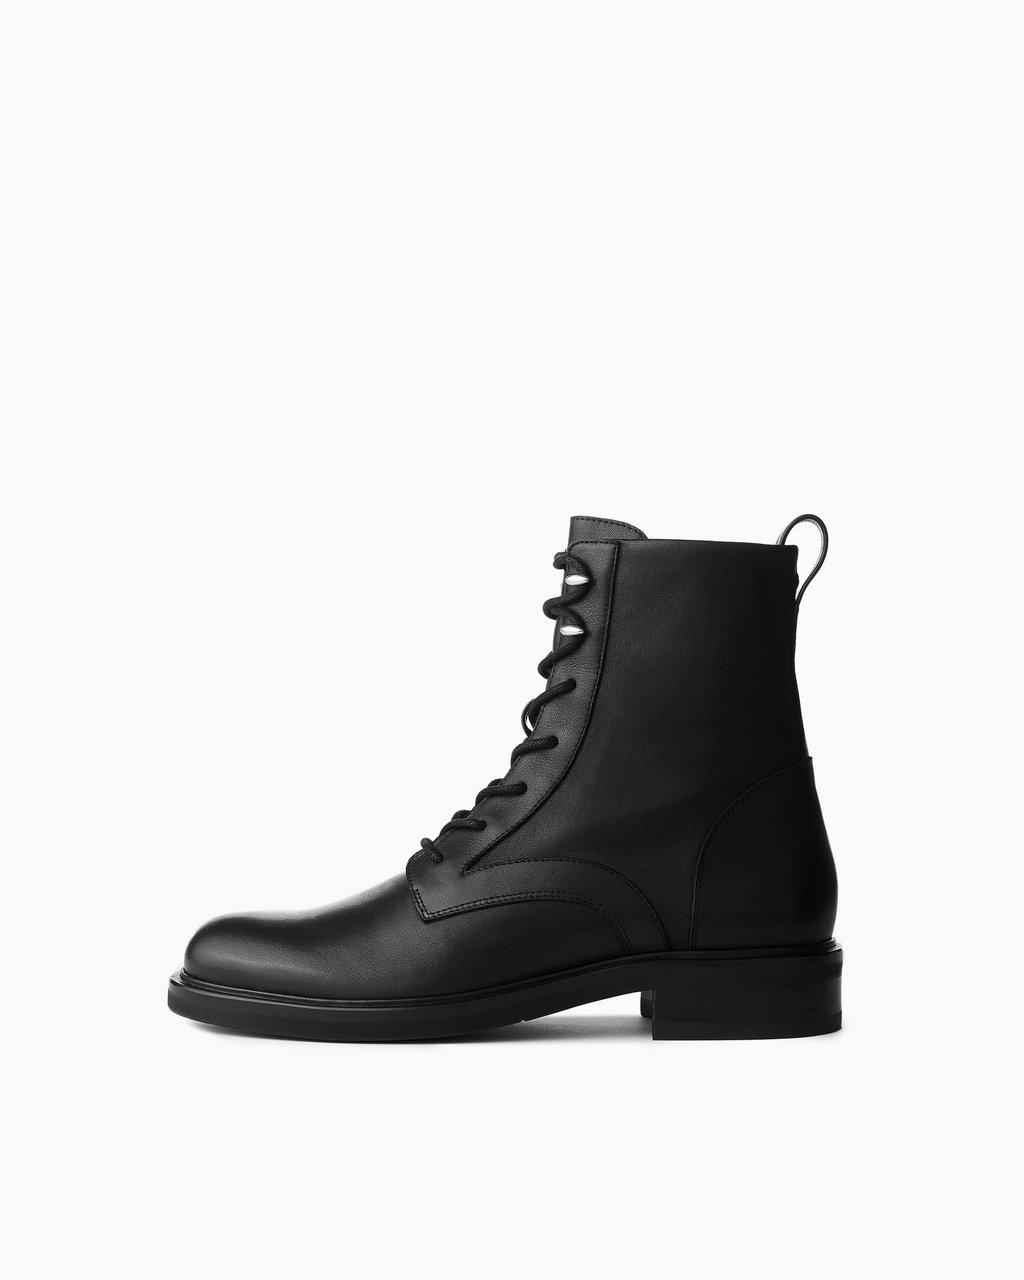 Slayton Lace Up Boot - Tumbled Leather